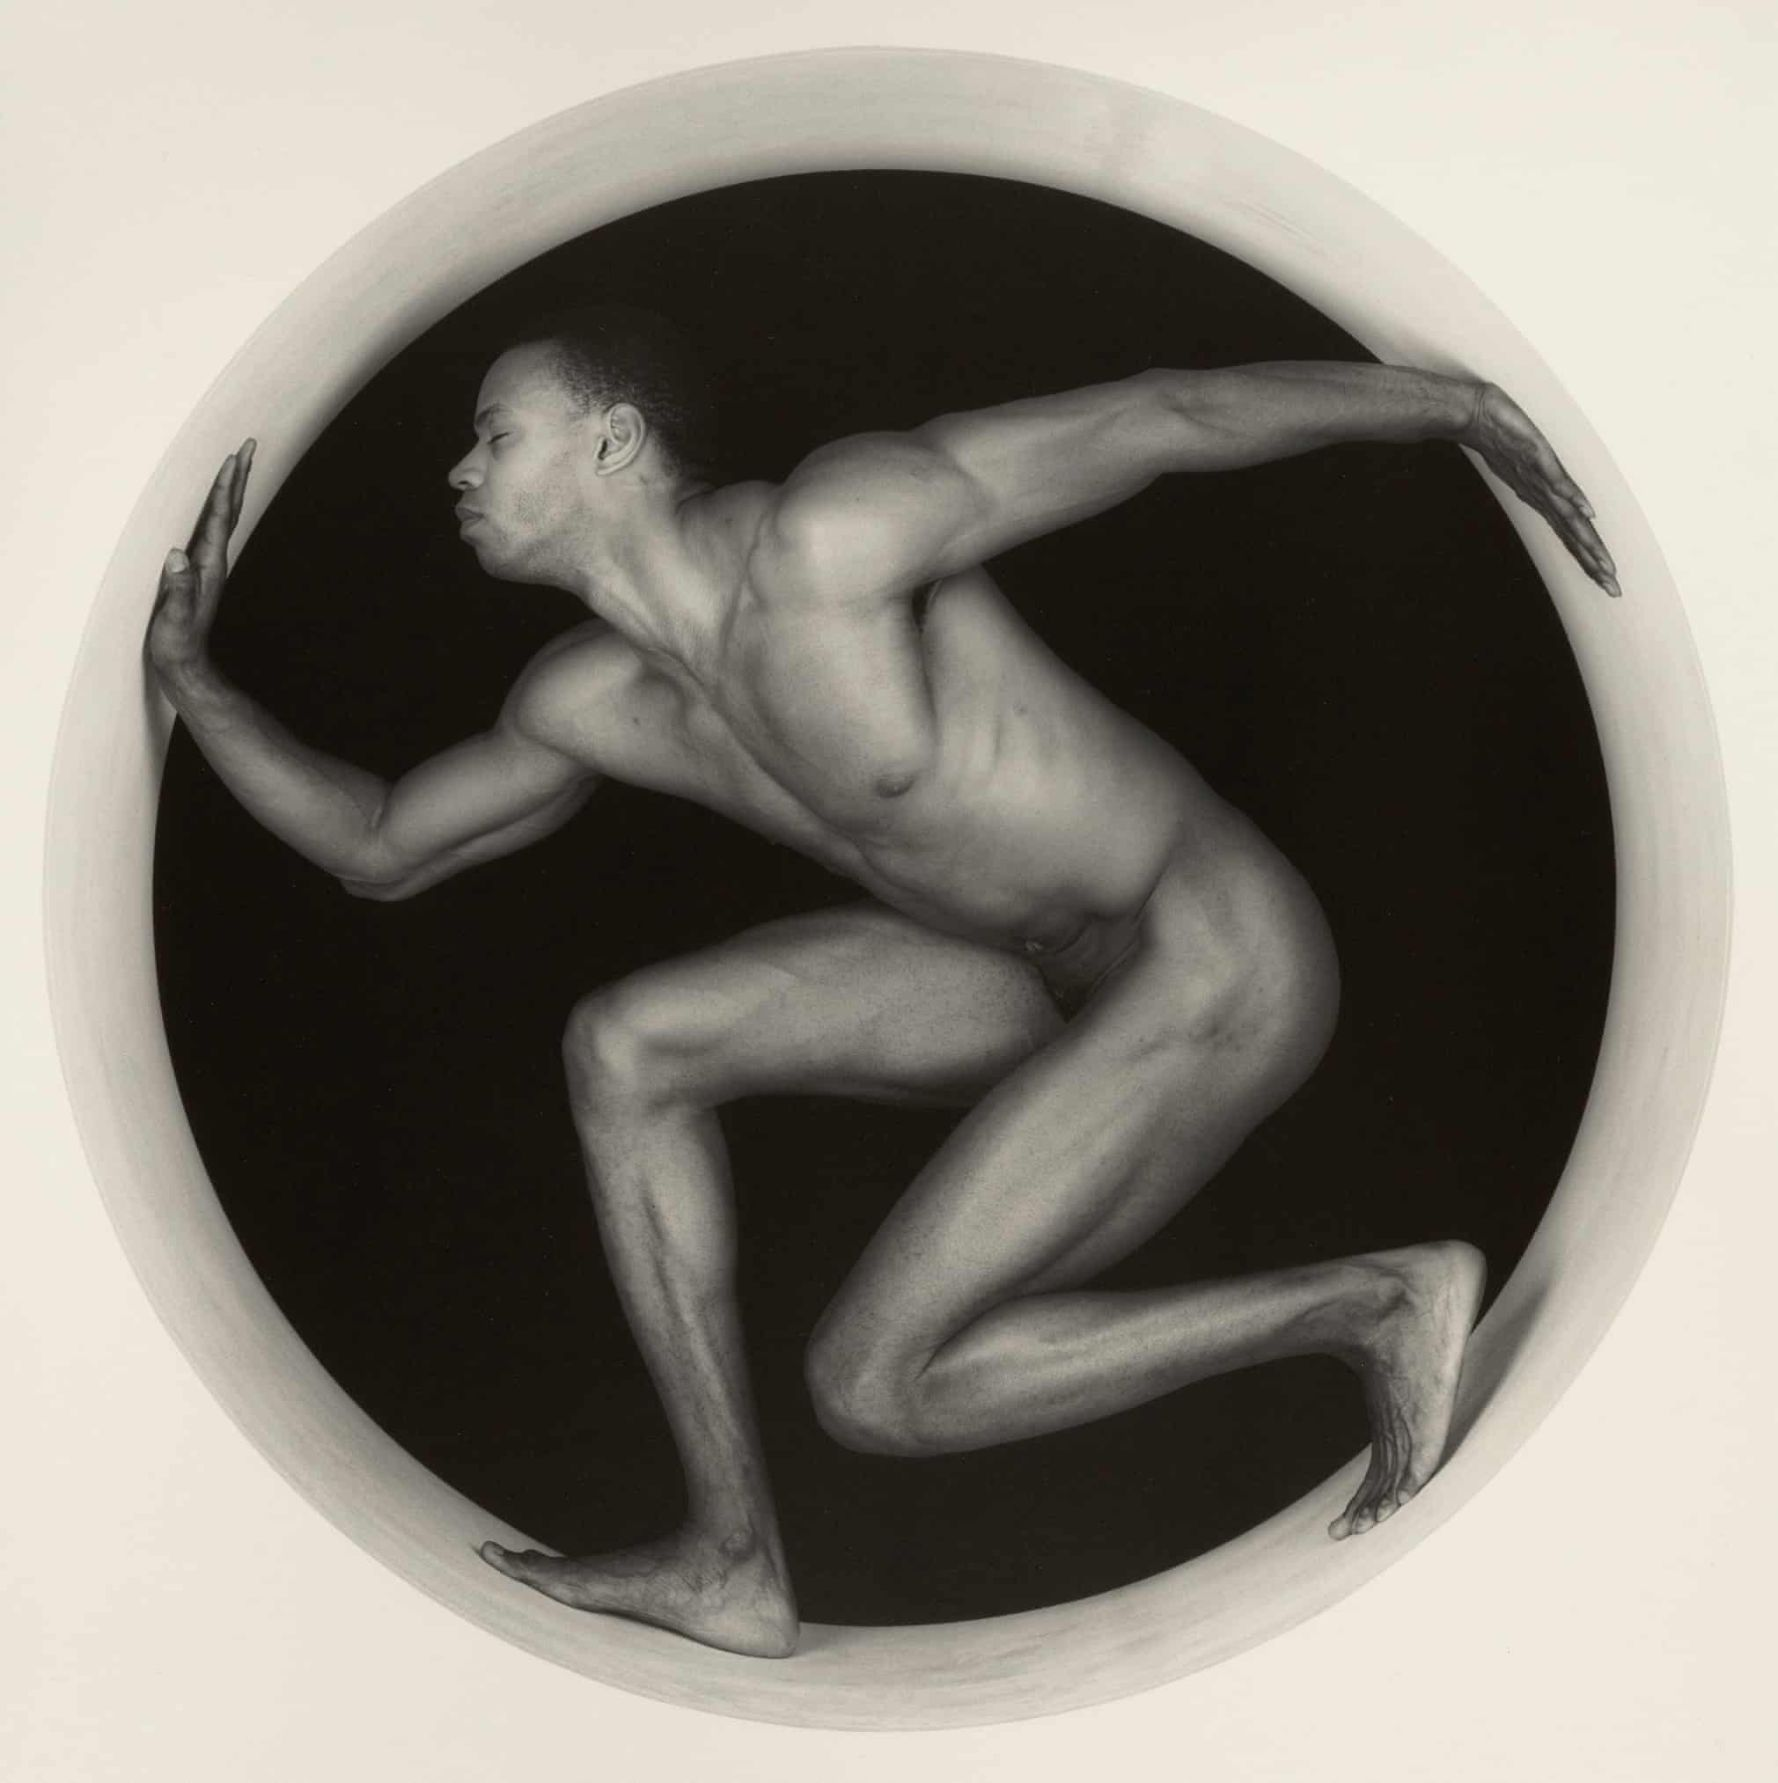 Robert Mapplethorpe gay photos, thomas, 1986